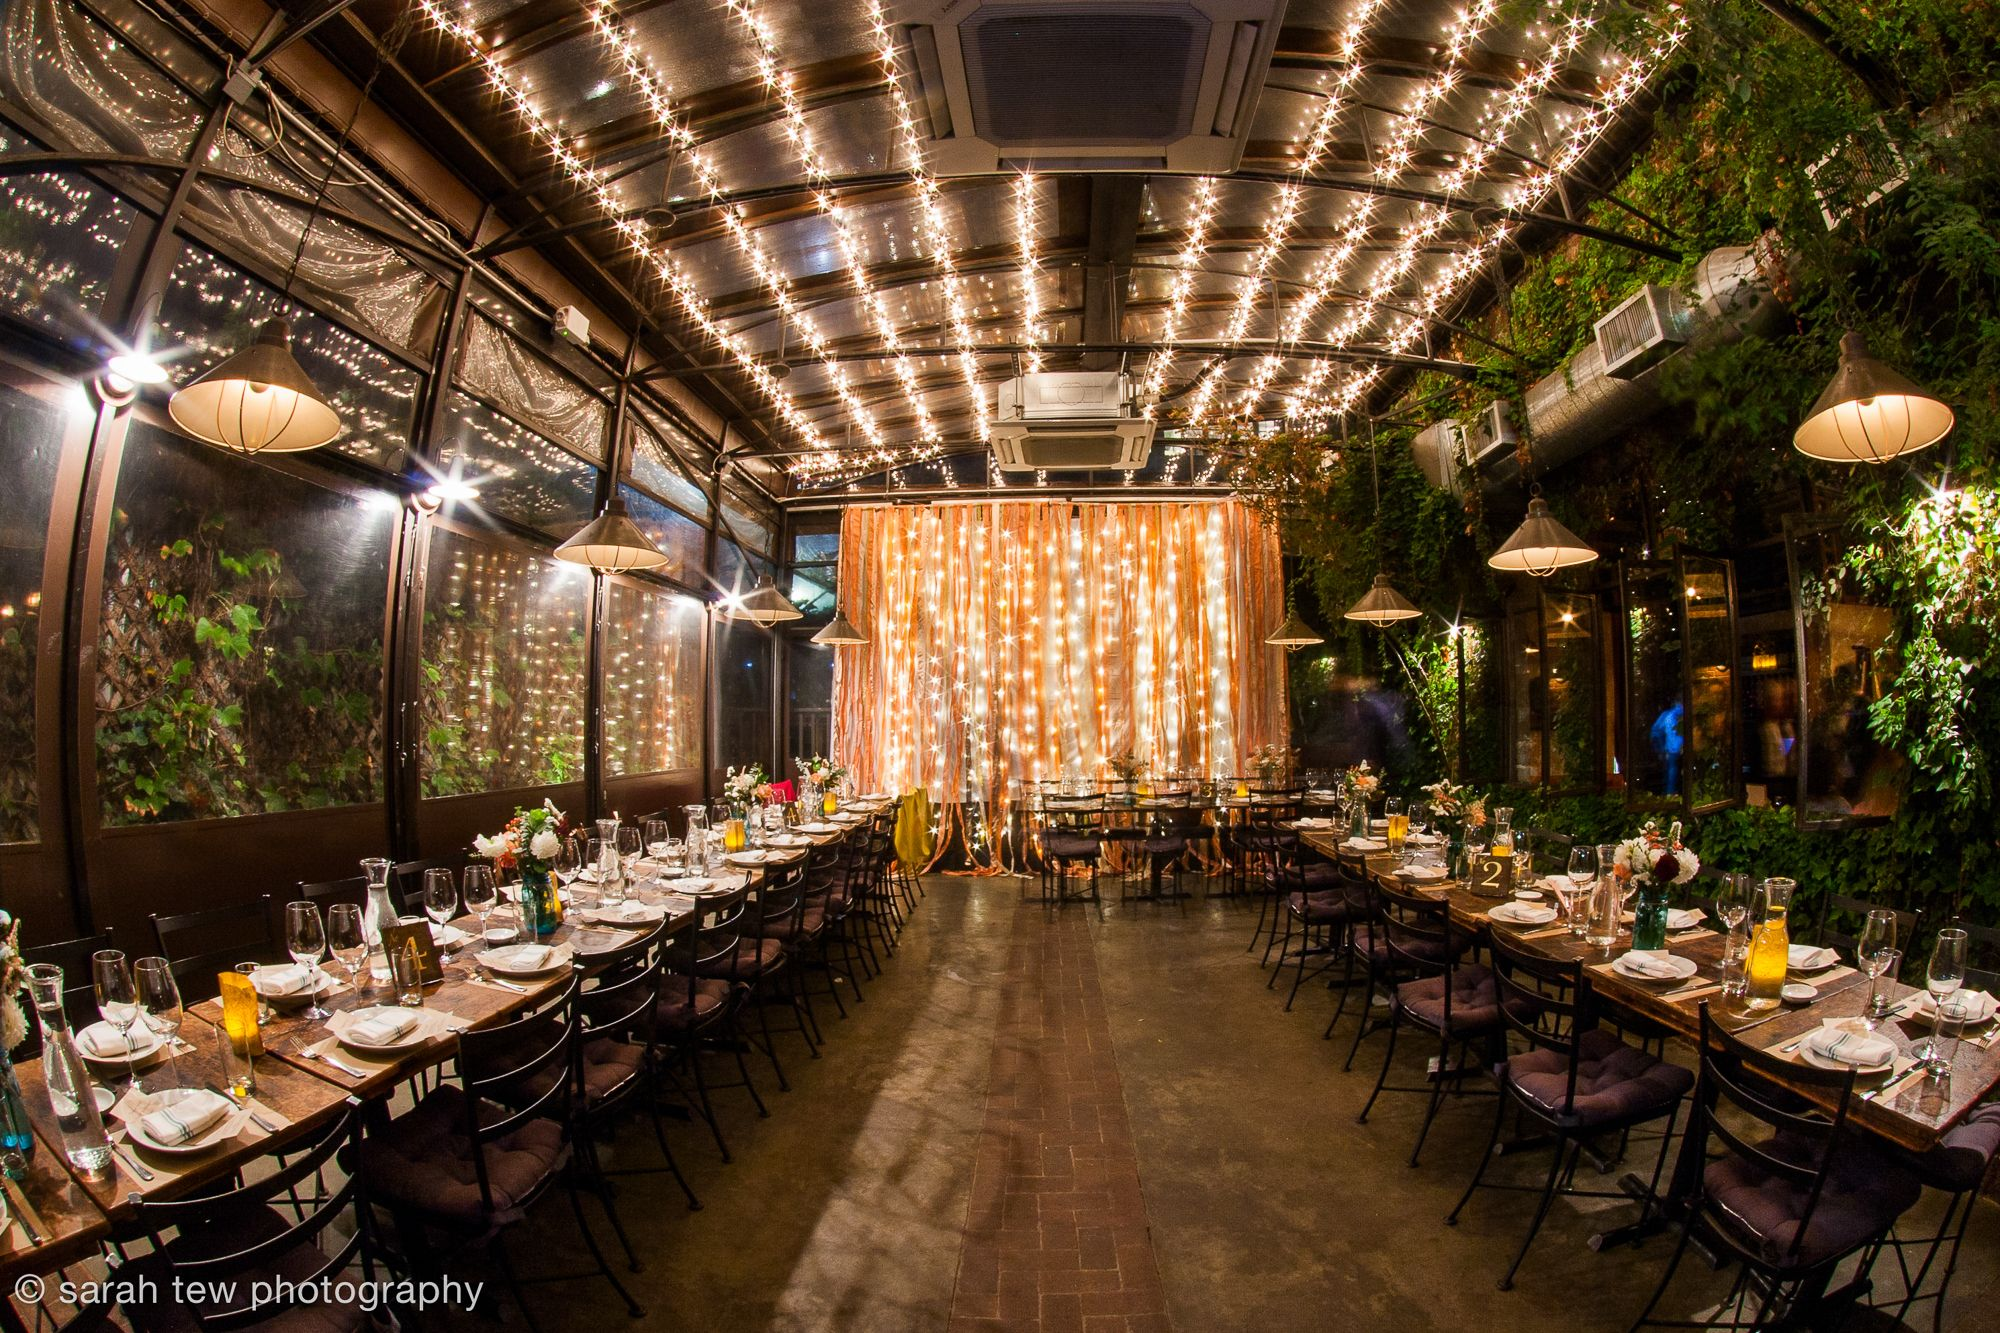 Same Wedding At Aurora In Williamsburg Brooklyn Sarah Tew Photography Shown Here